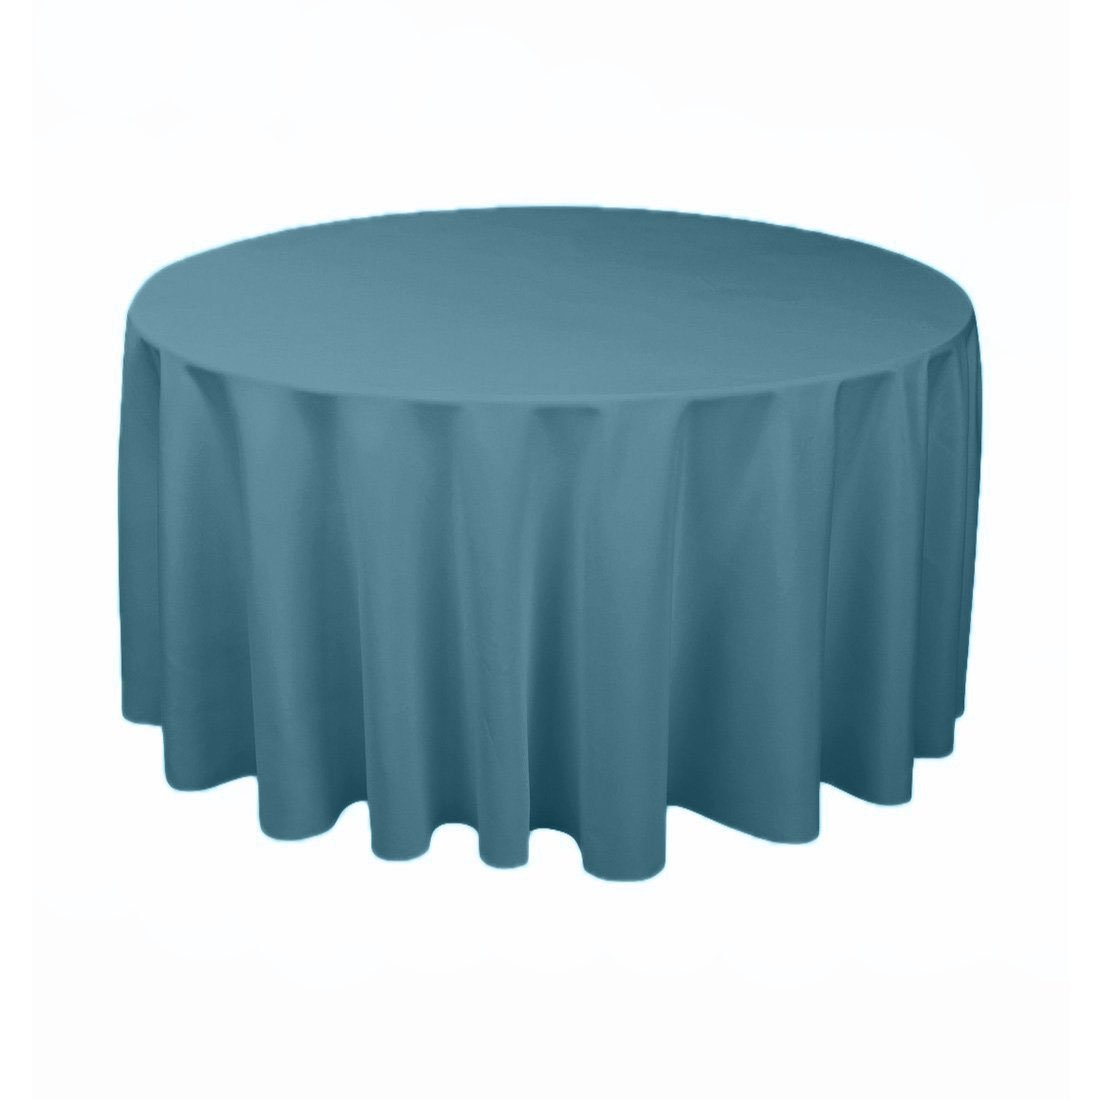 Polyester Round 120 Multiple colors By Runner Runner Linens Factory (Steel Blue)